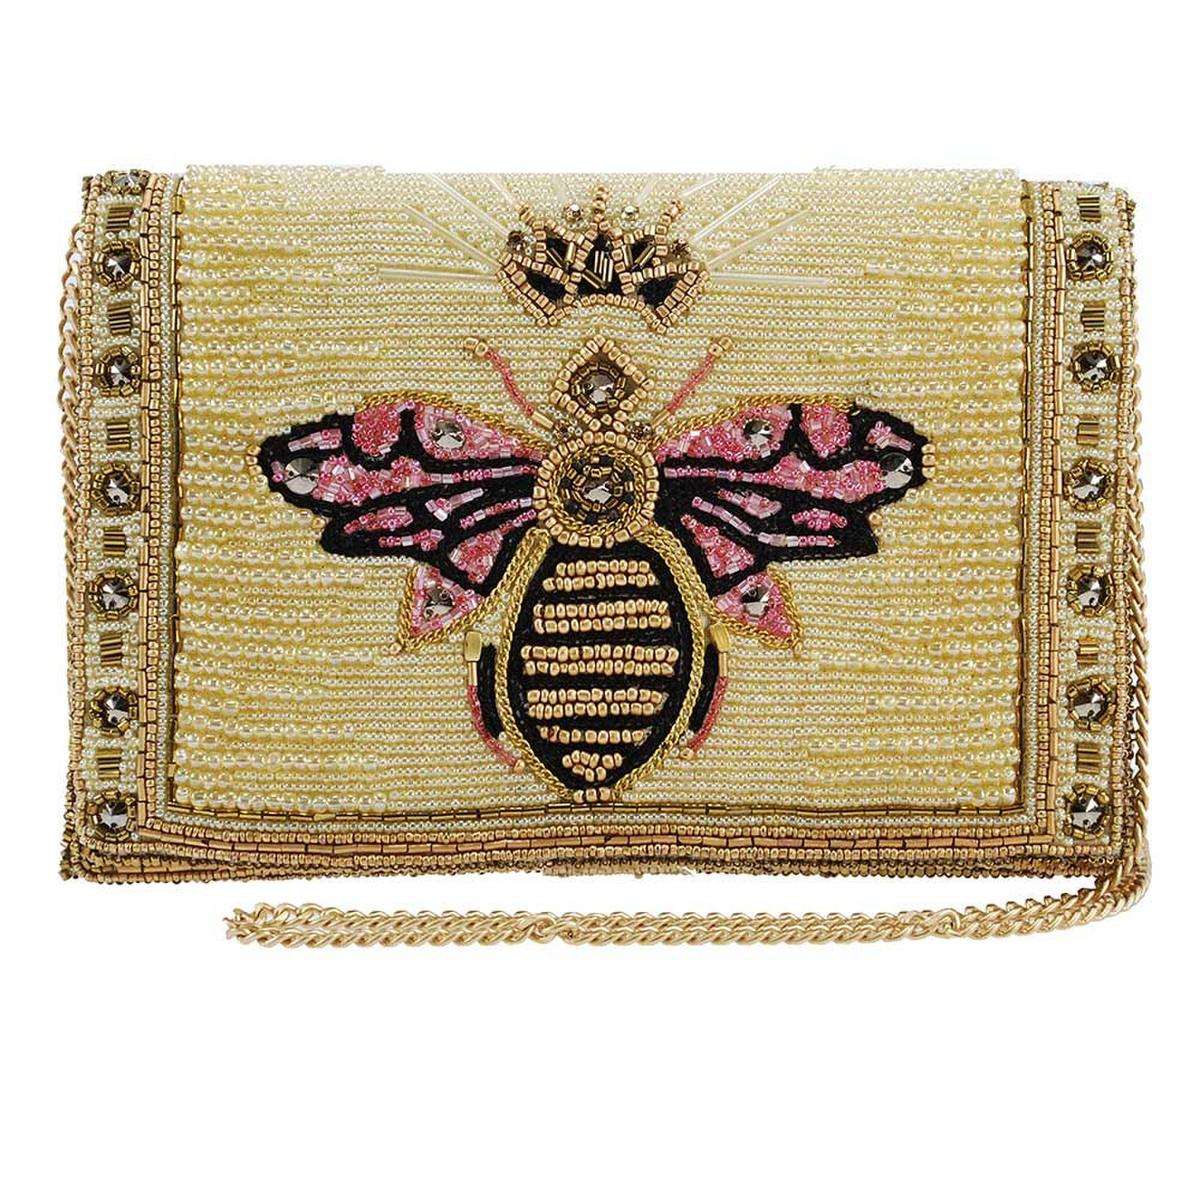 Buzzed Beaded/Embroidered Queen Bee Crossbody Clutch